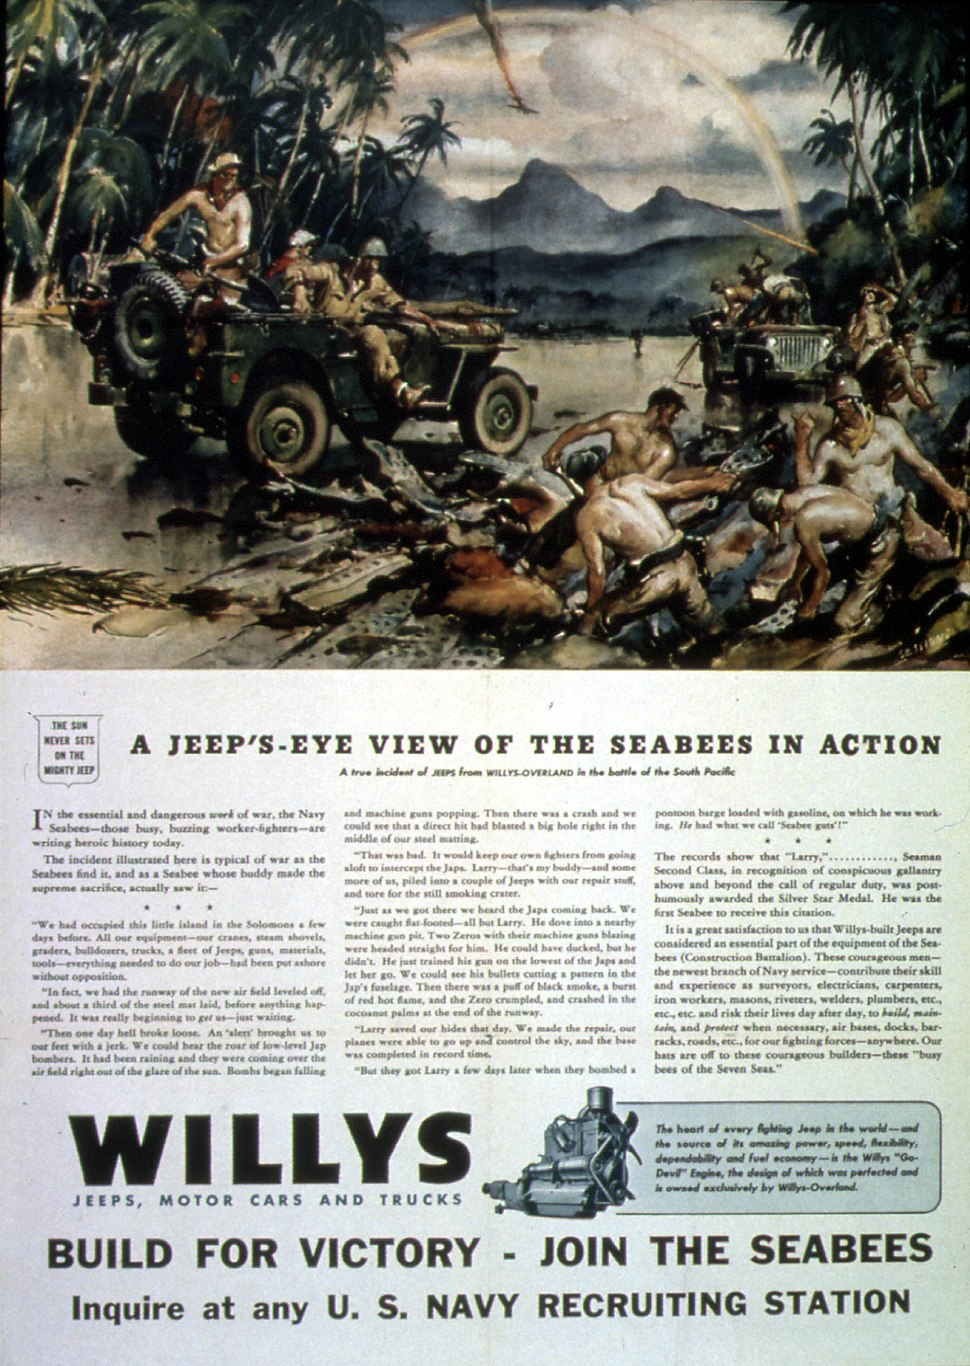 A jeep's-eye view of the seabees in action - NARA - 513727